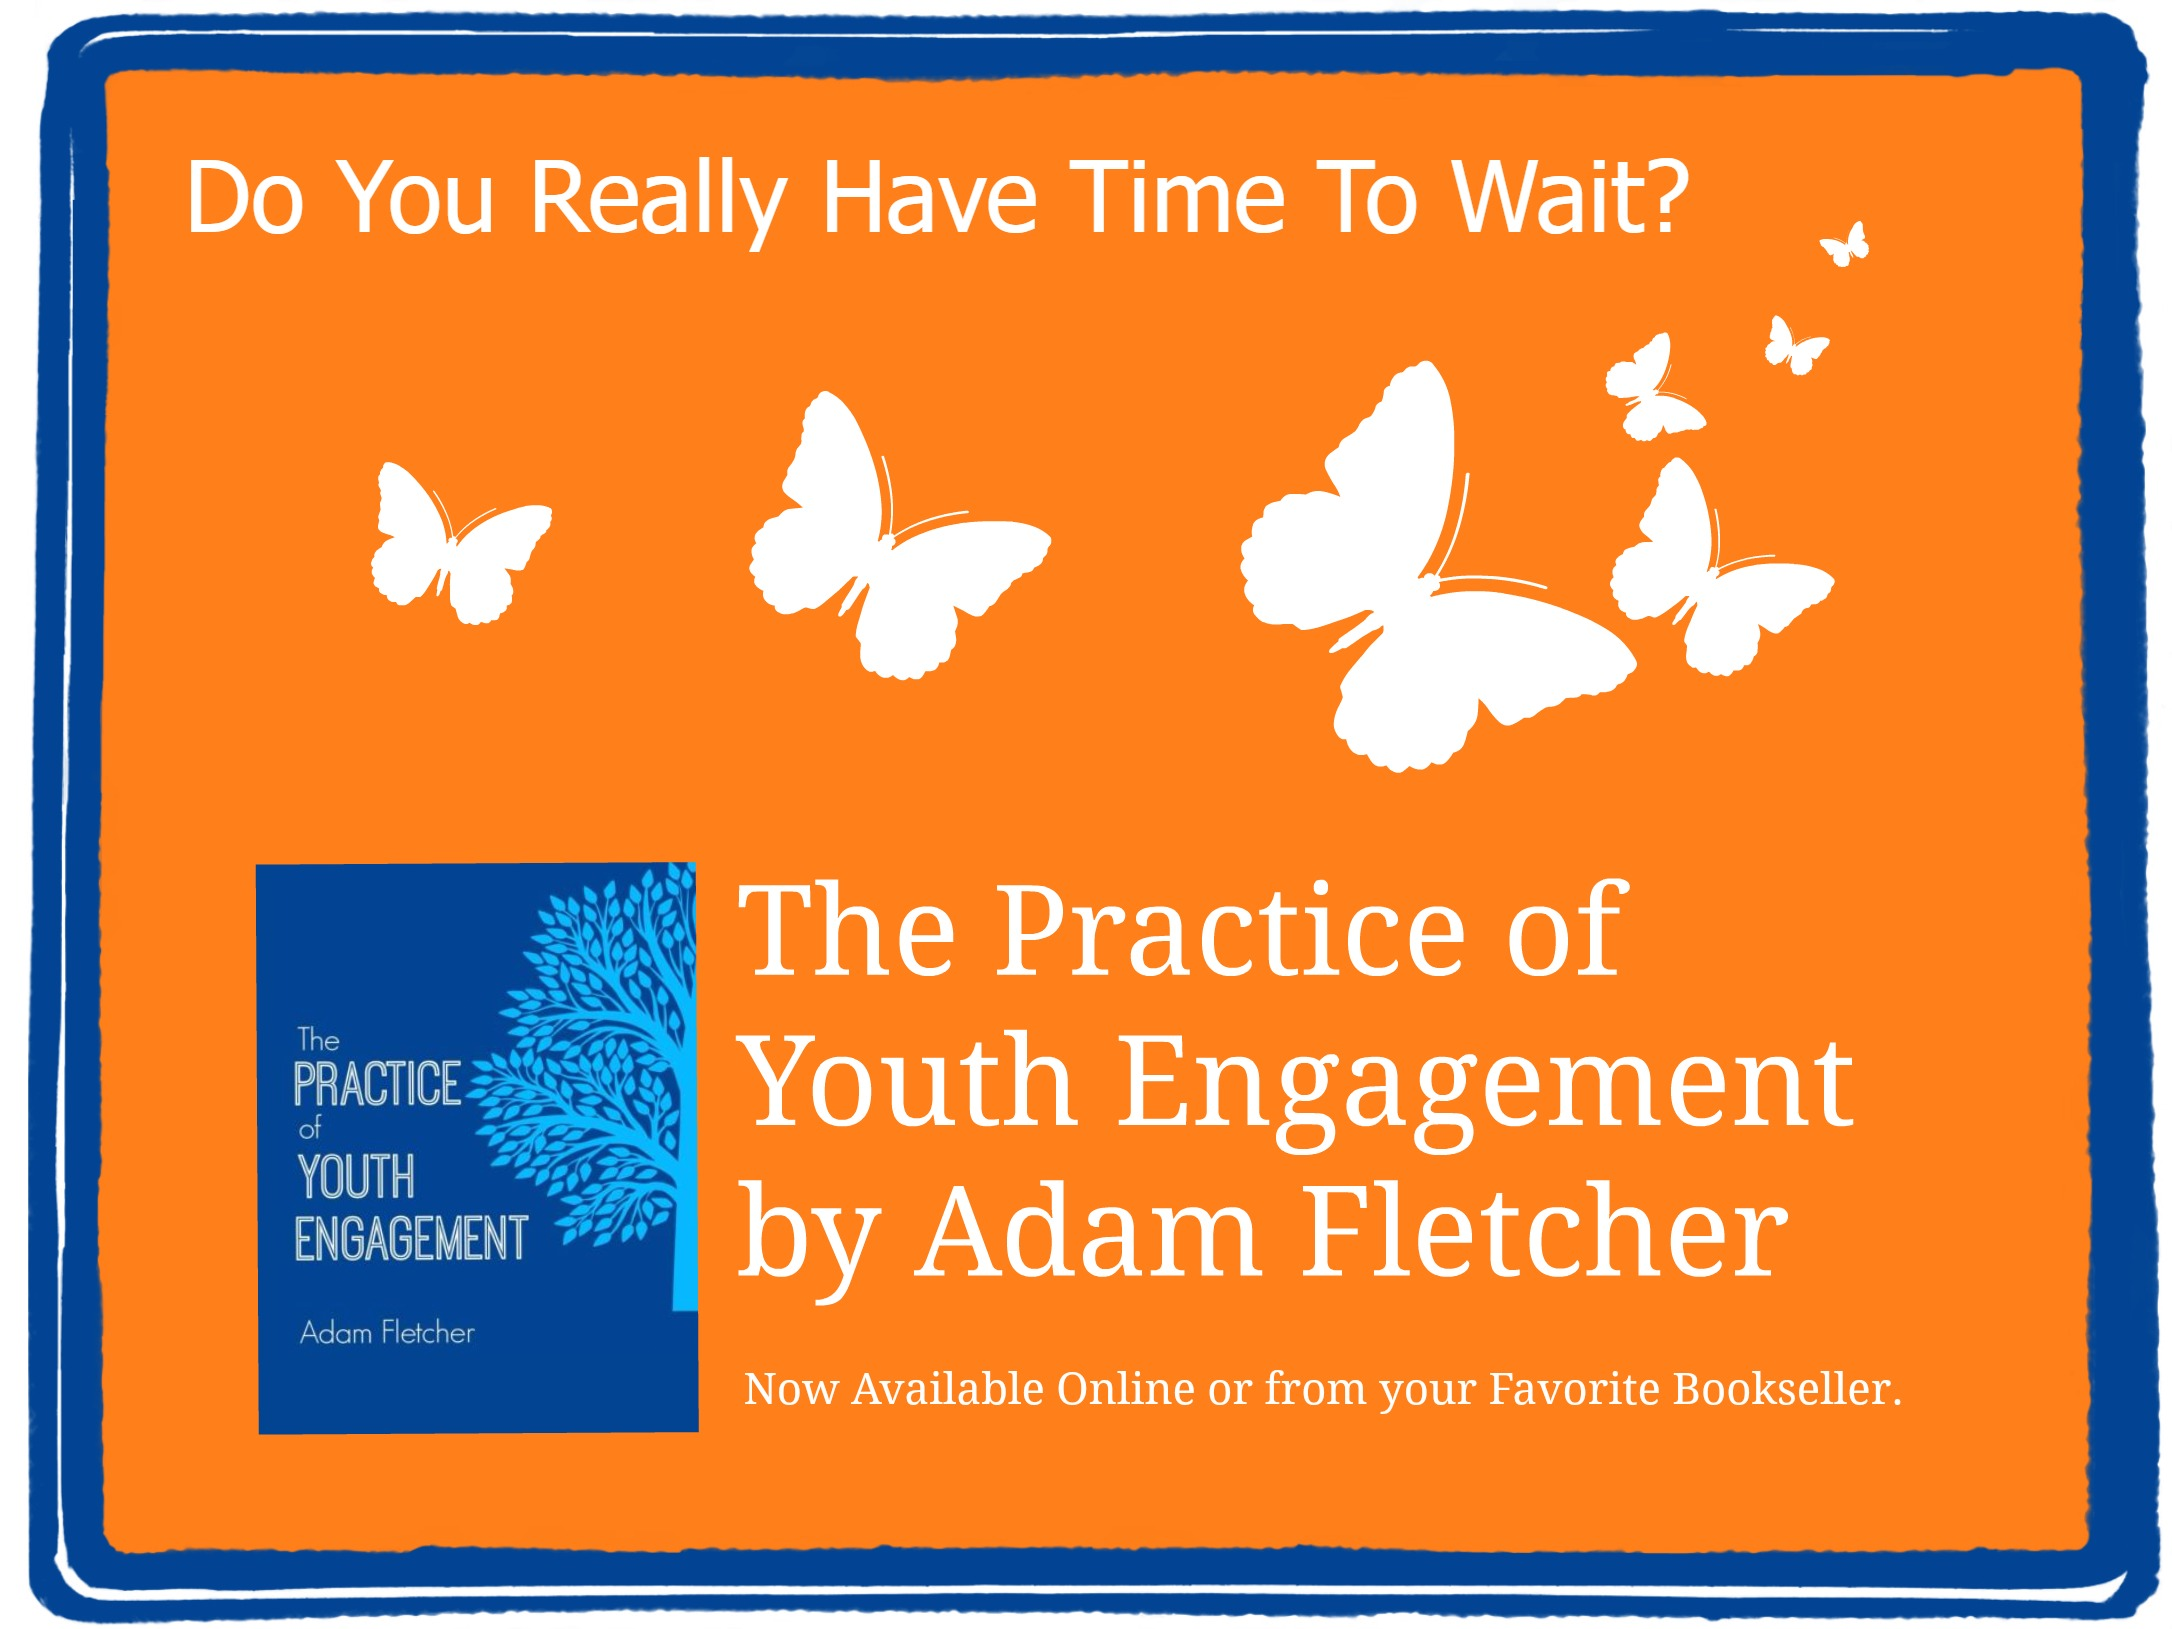 The Practice of Youth Engagement by Adam Fletcher!